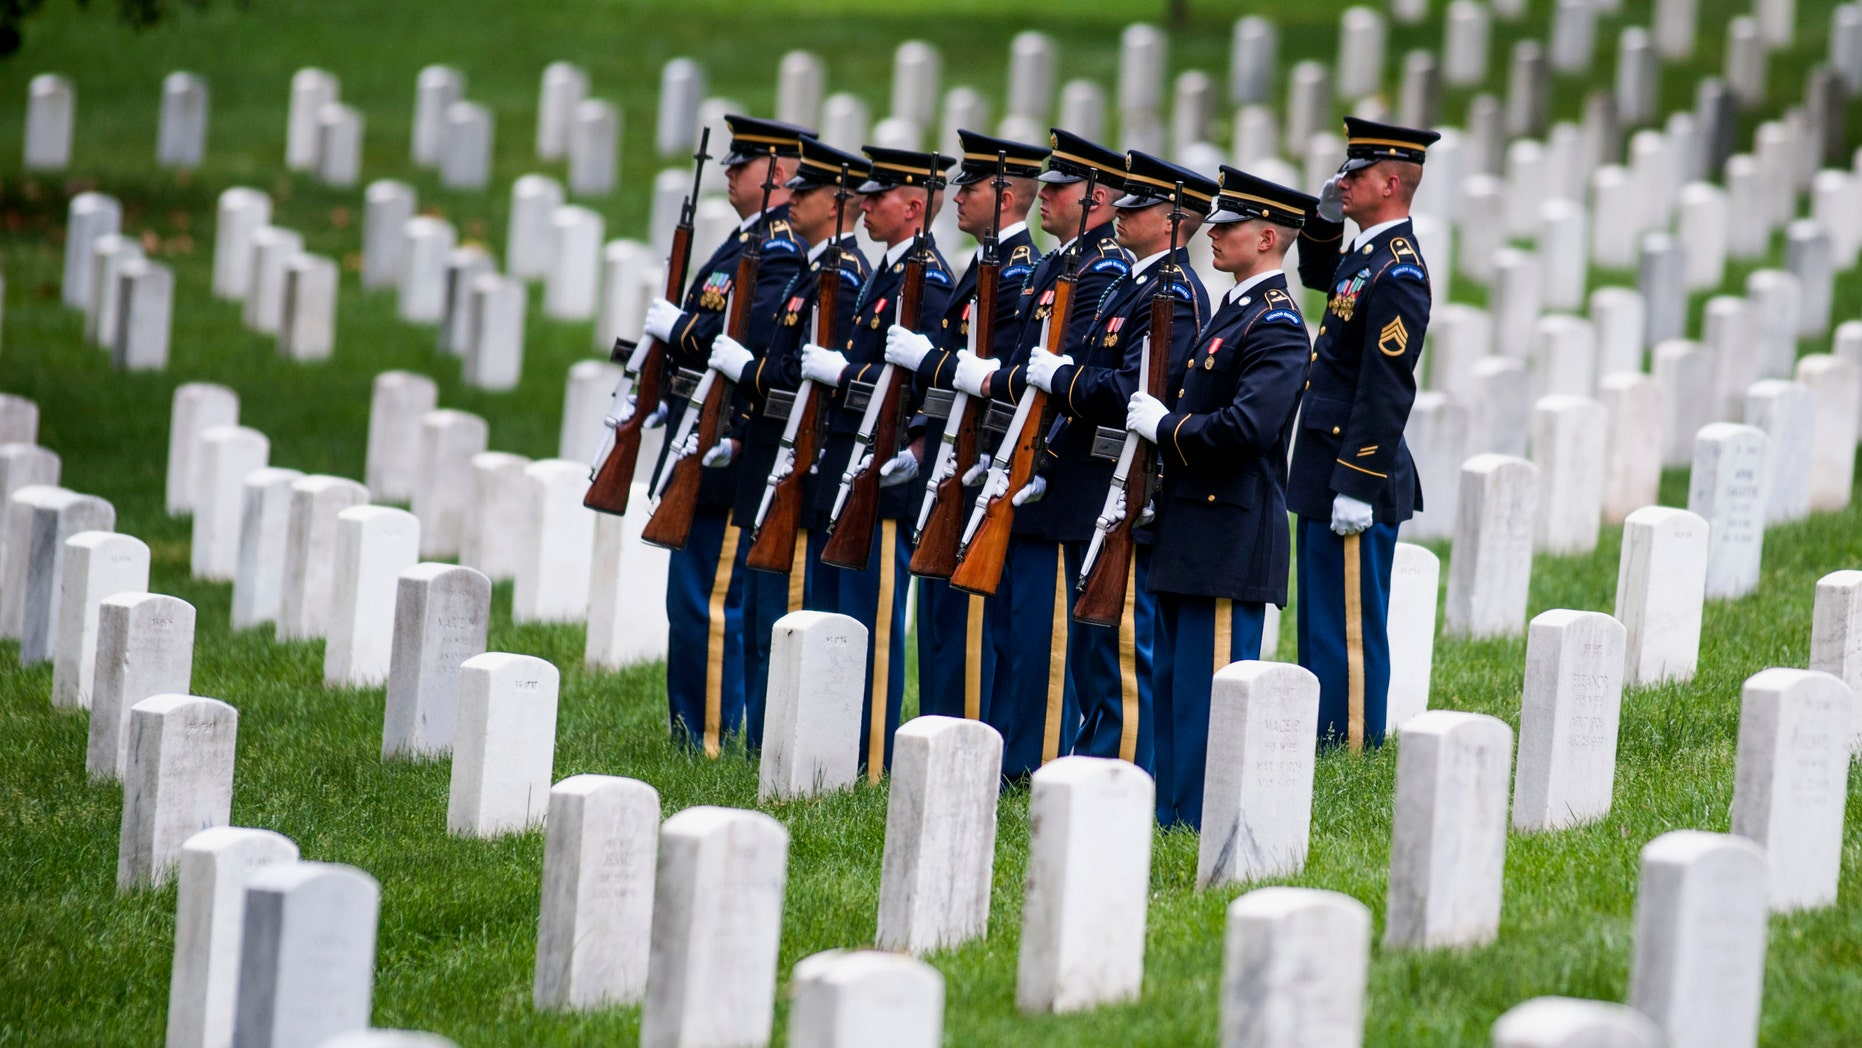 In this May 29, 2014 file photo, a firing party stands at attention during burial services at Arlington National Cemetery in Arlington, Va.